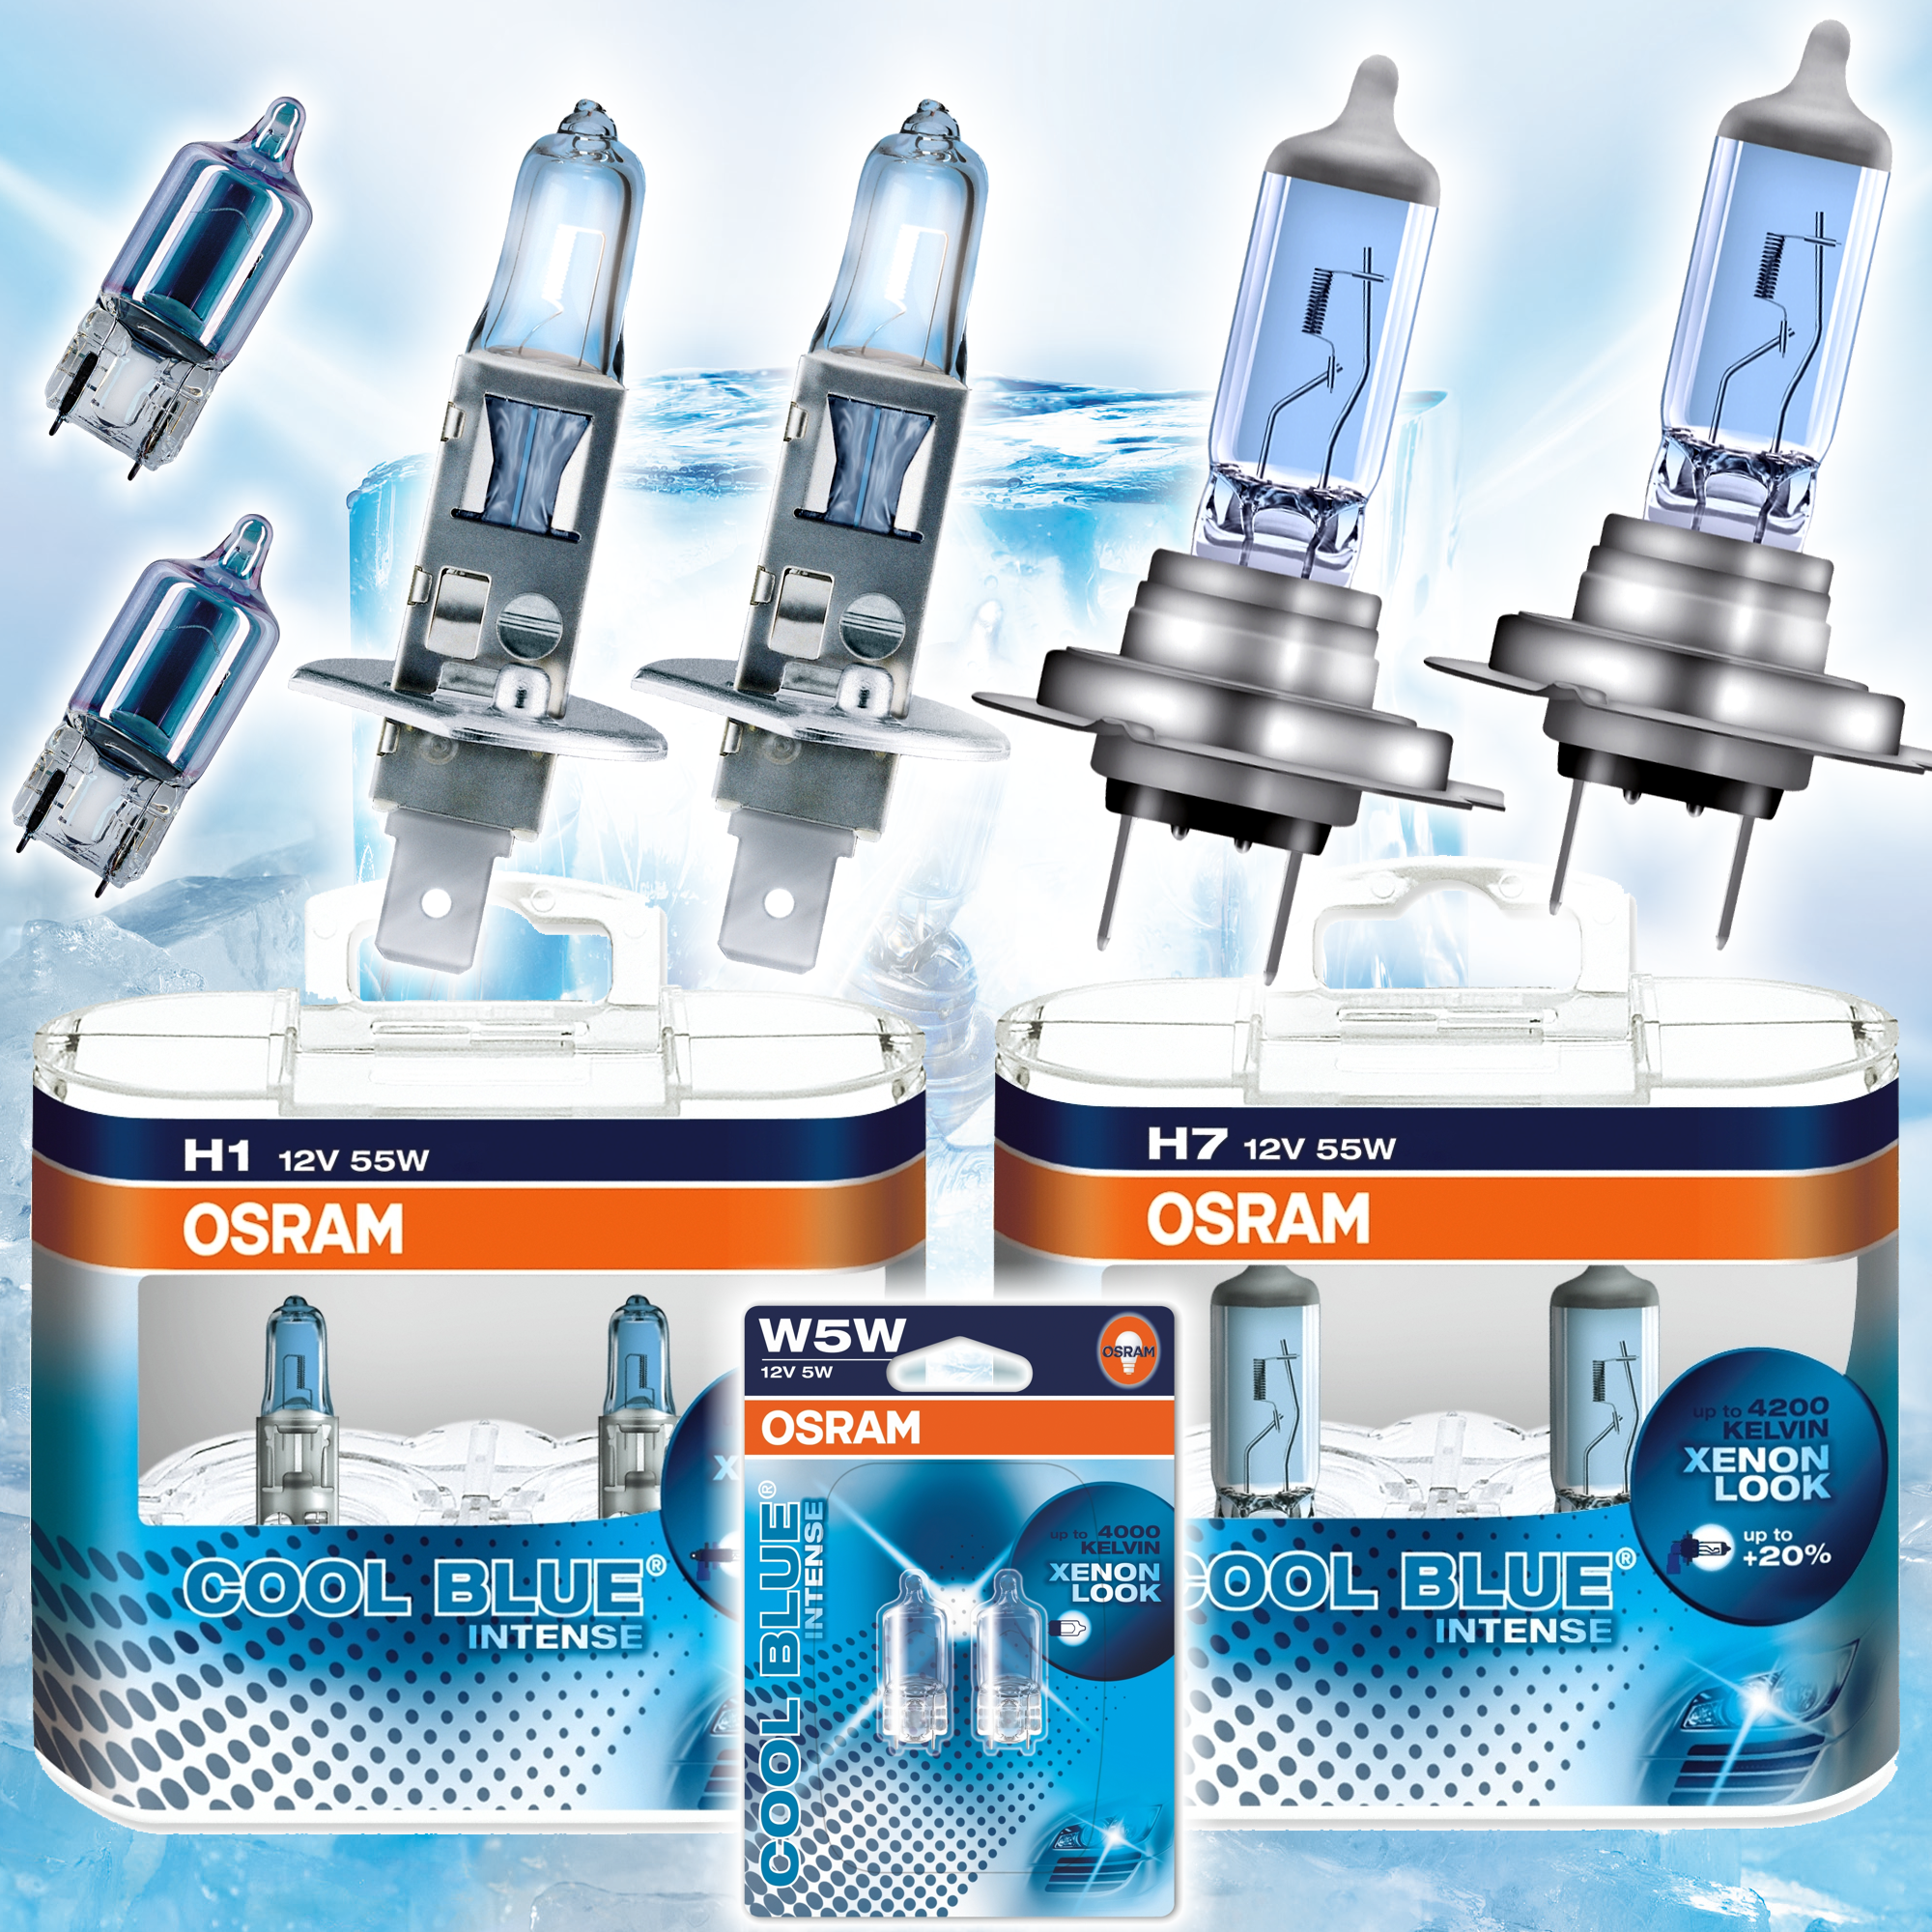 osram cool blue intense xenon look lampen h1 h7 w5w ebay. Black Bedroom Furniture Sets. Home Design Ideas